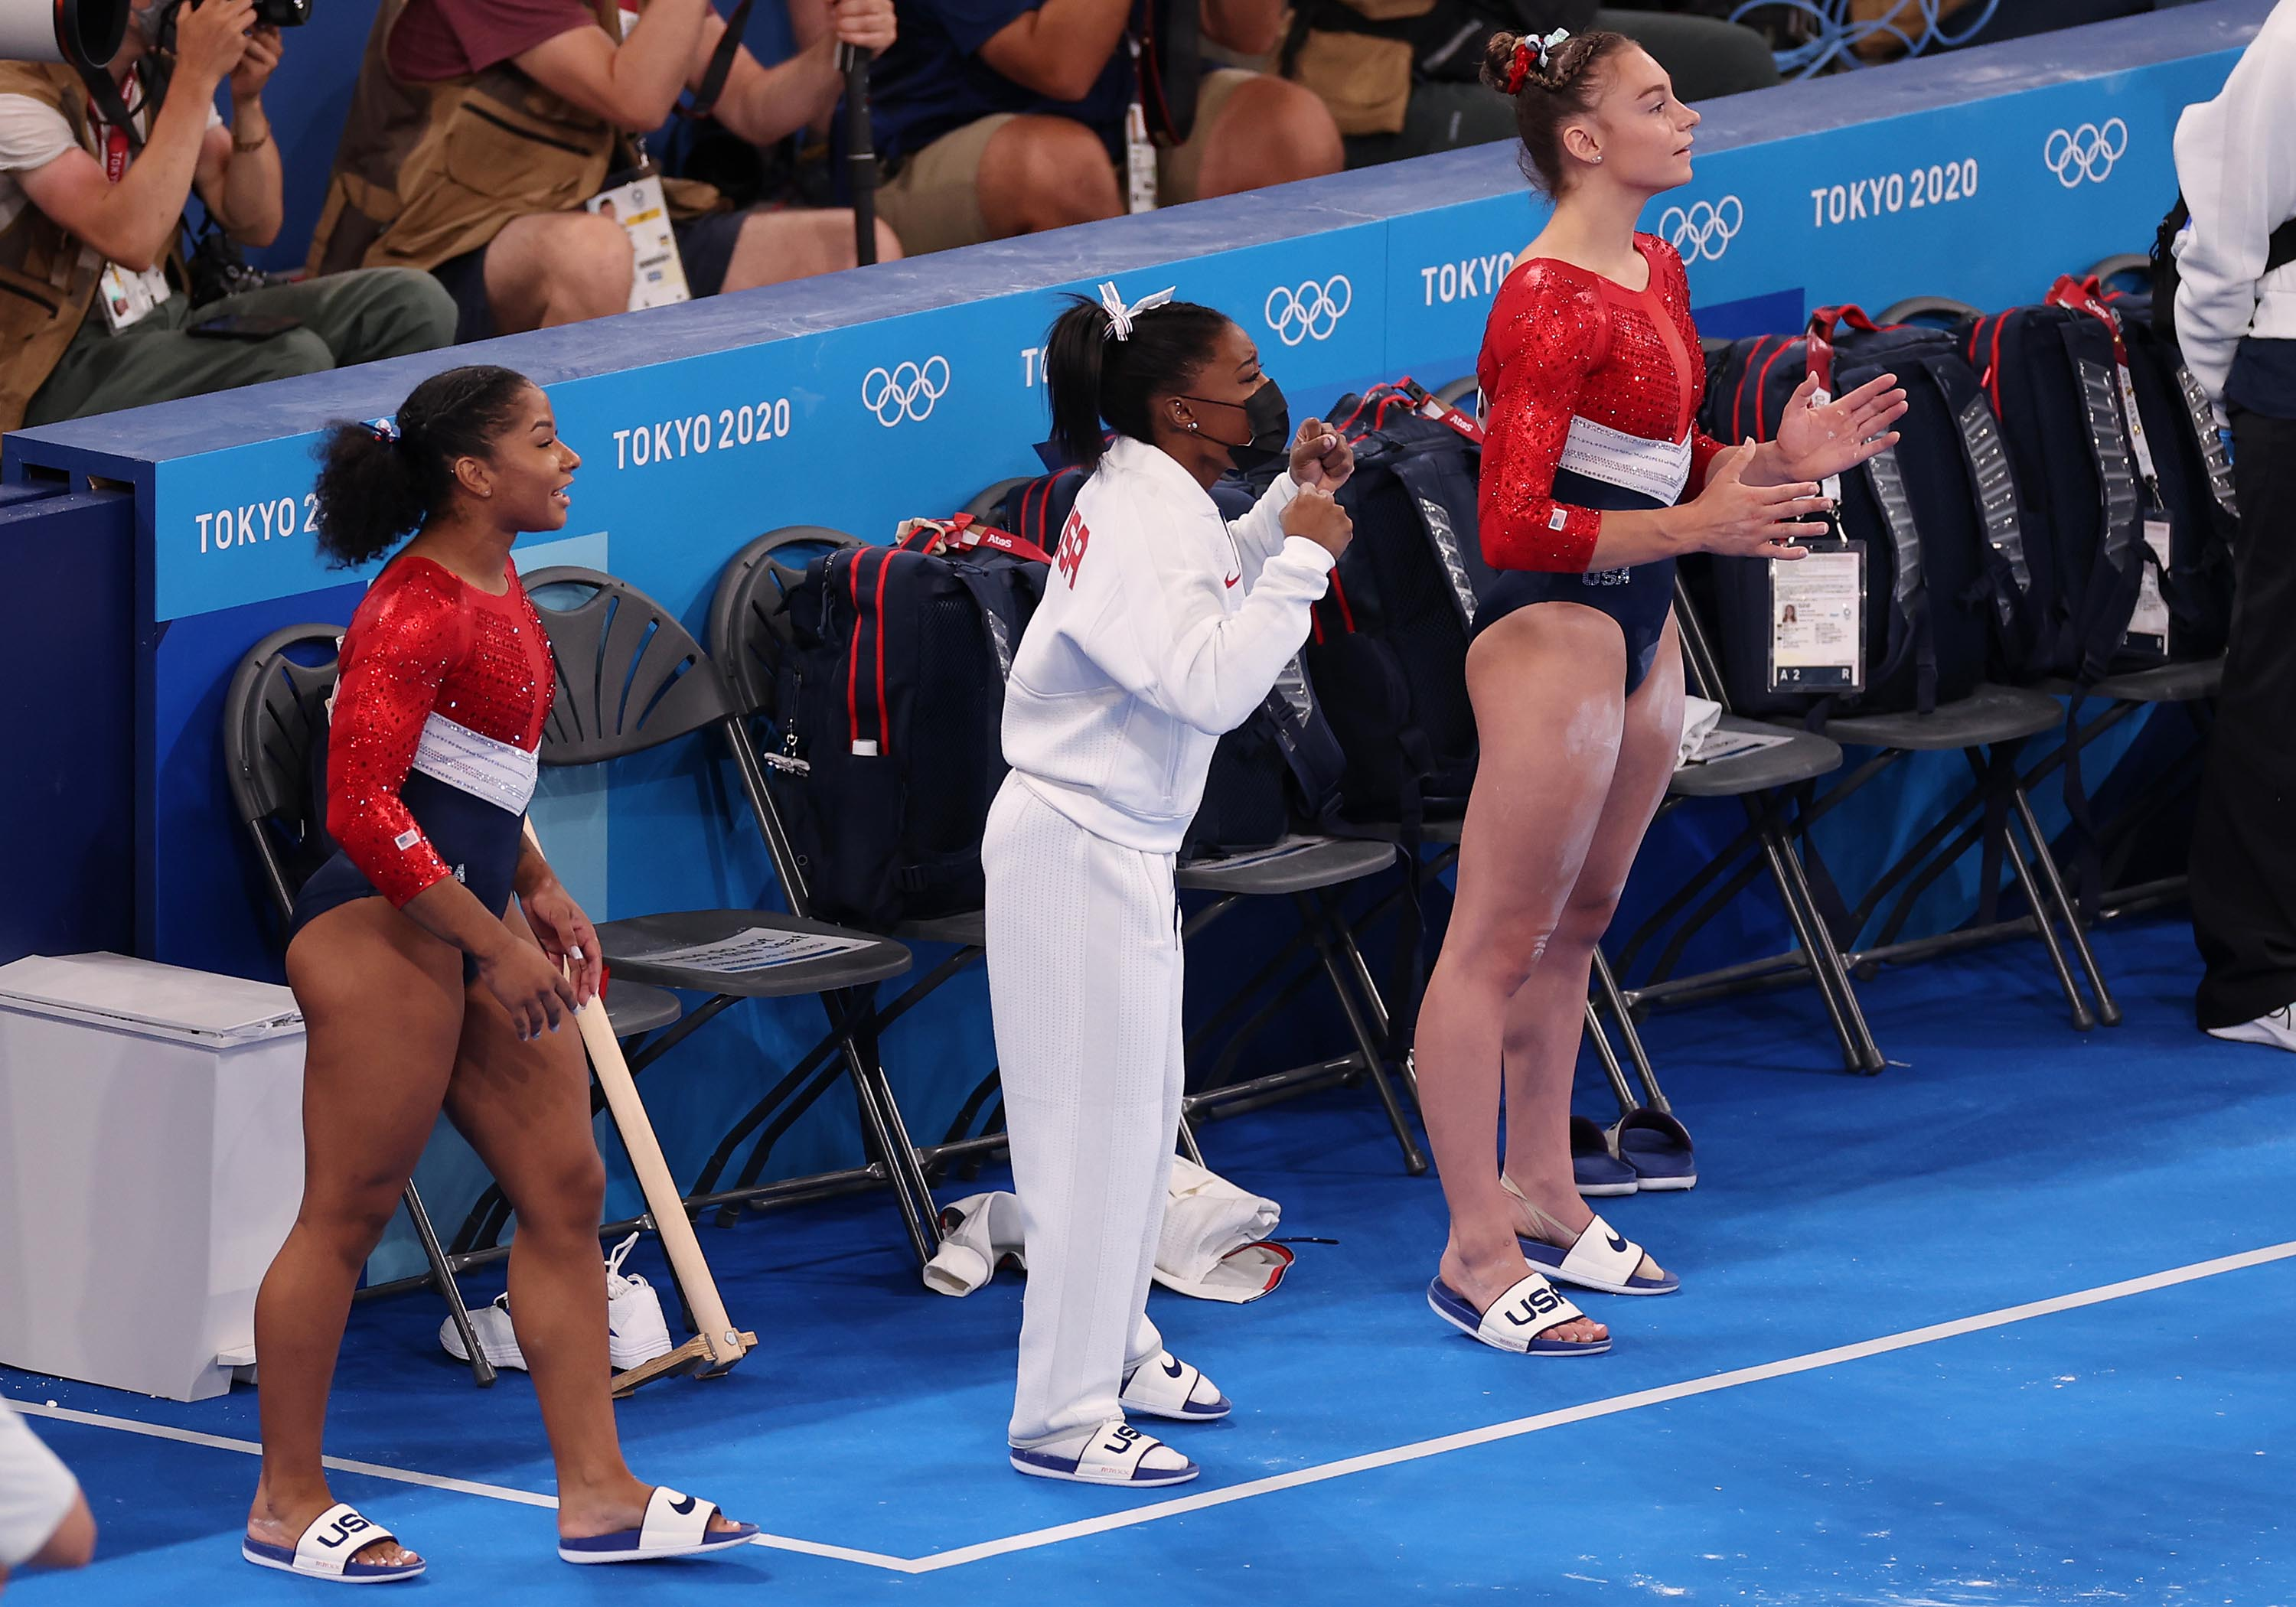 From left: Jordan Chiles, Simone Biles and Grace McCallum cheer on Sunisa Lee of Team United States as she competes on uneven bars on Tuesday.